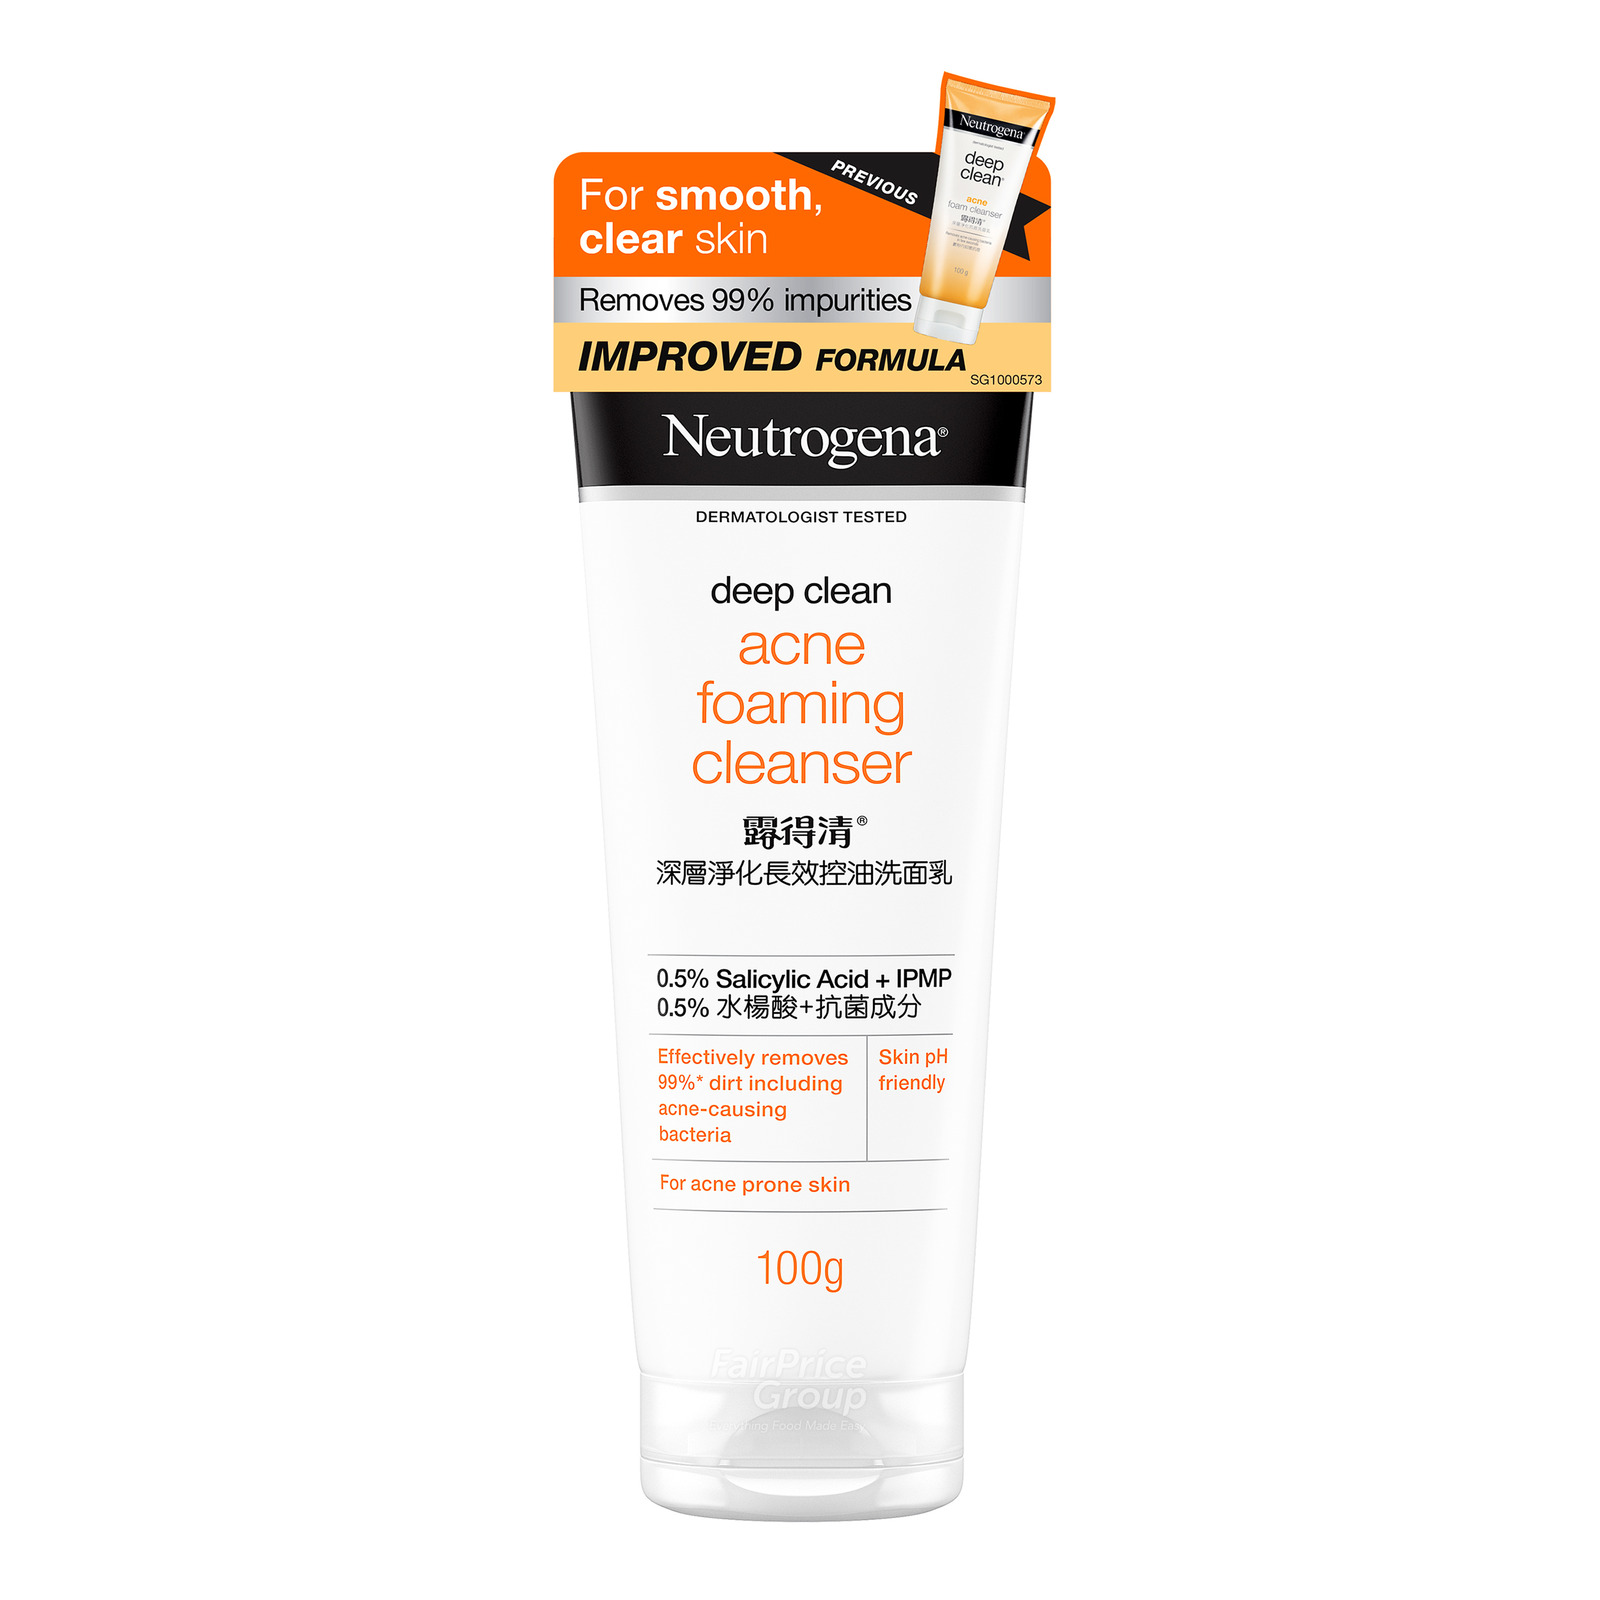 Neutrogena Deep Clean Foam Cleanser - Acne